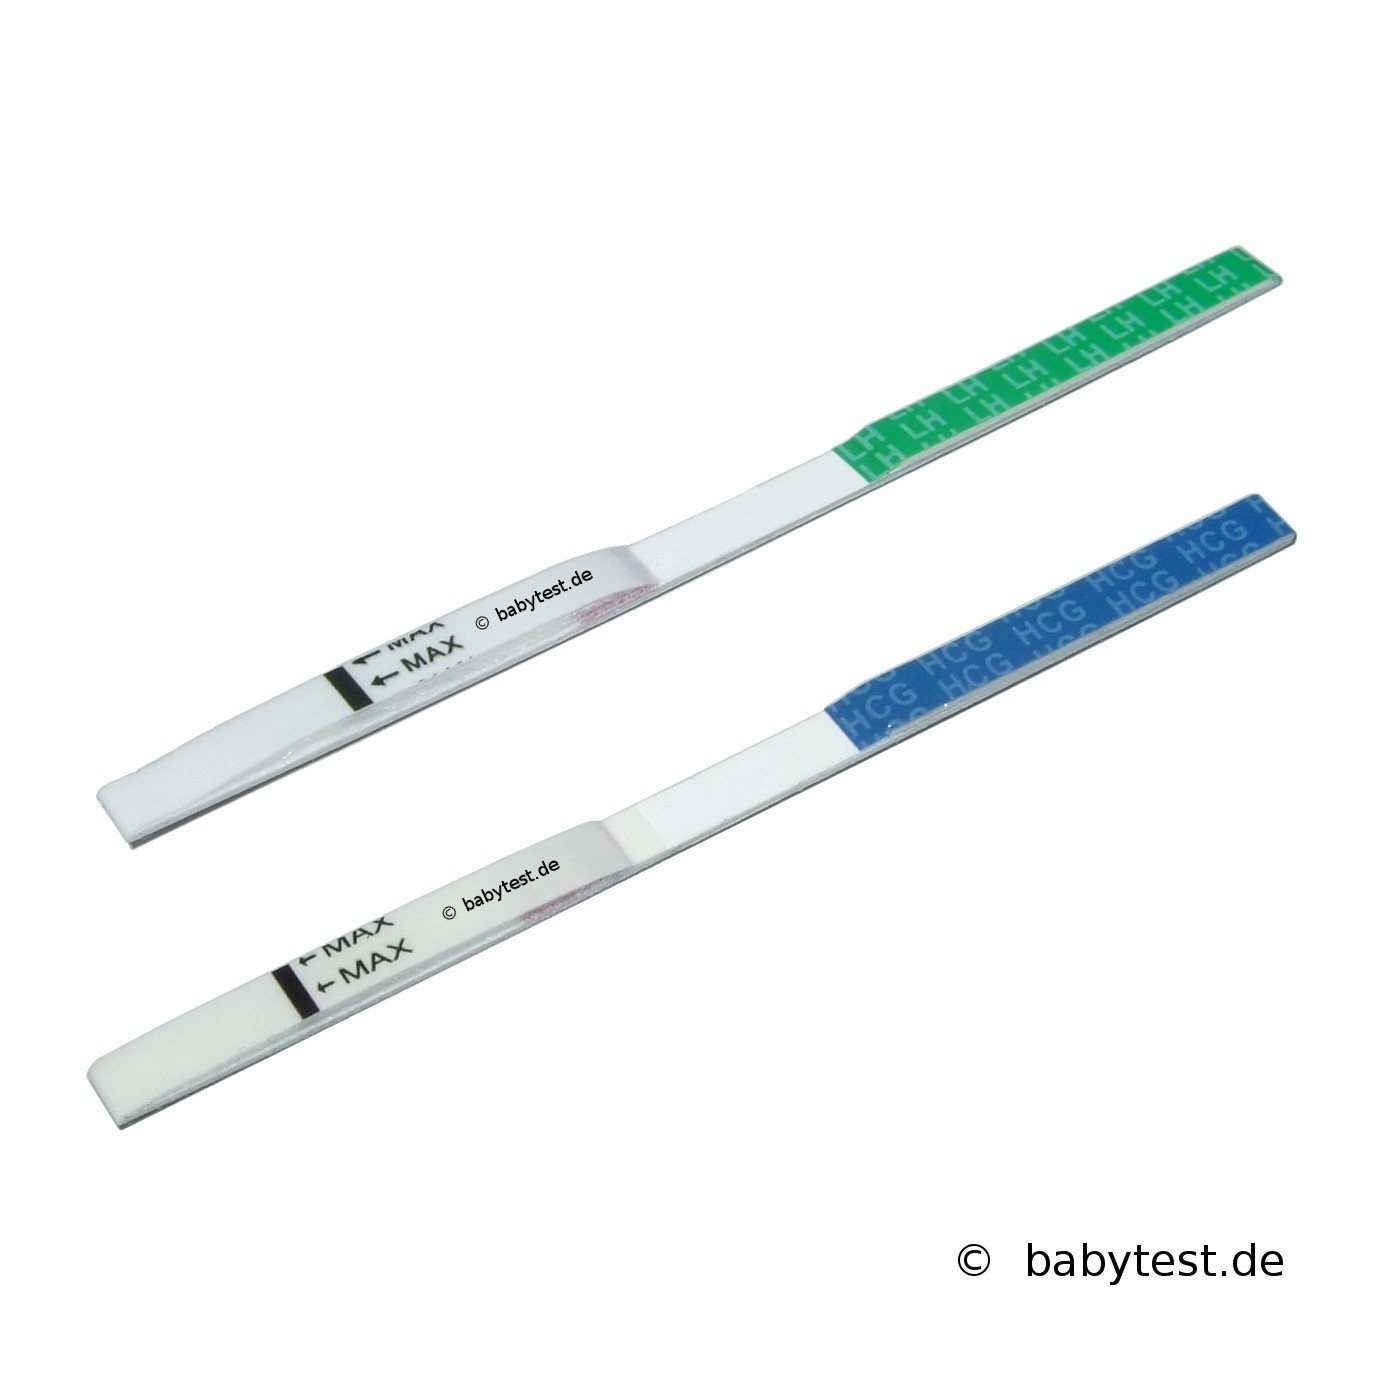 babytest-ovulationstest-30-schwangerschaftstest-30-kombination-ascimed